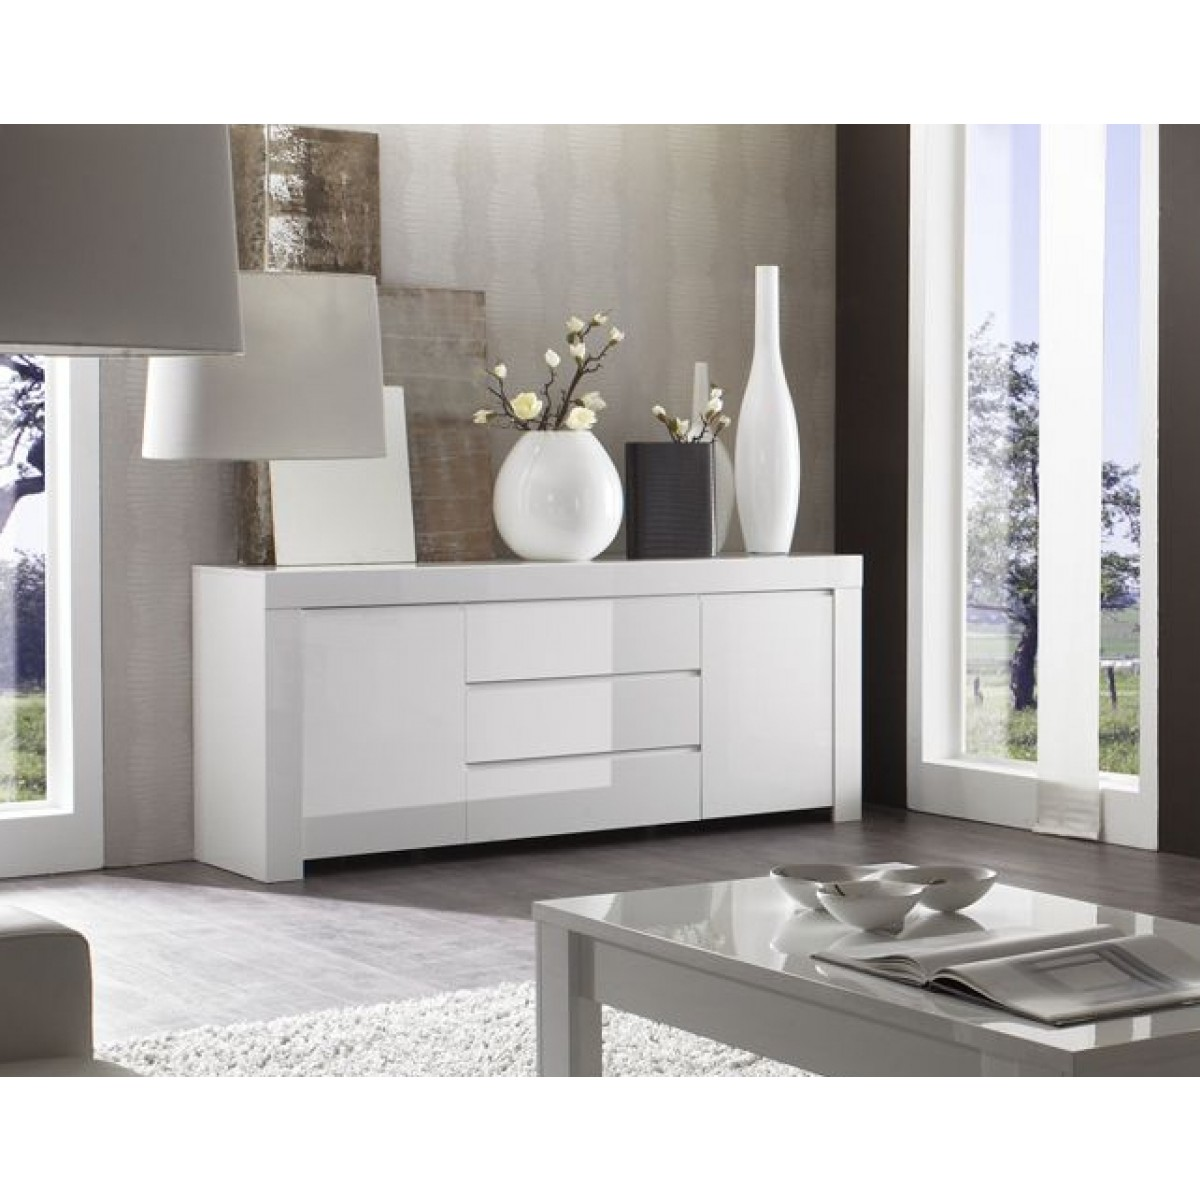 buffet laqu blanc 2 portes 3 tiroirs amalfi mooviin. Black Bedroom Furniture Sets. Home Design Ideas